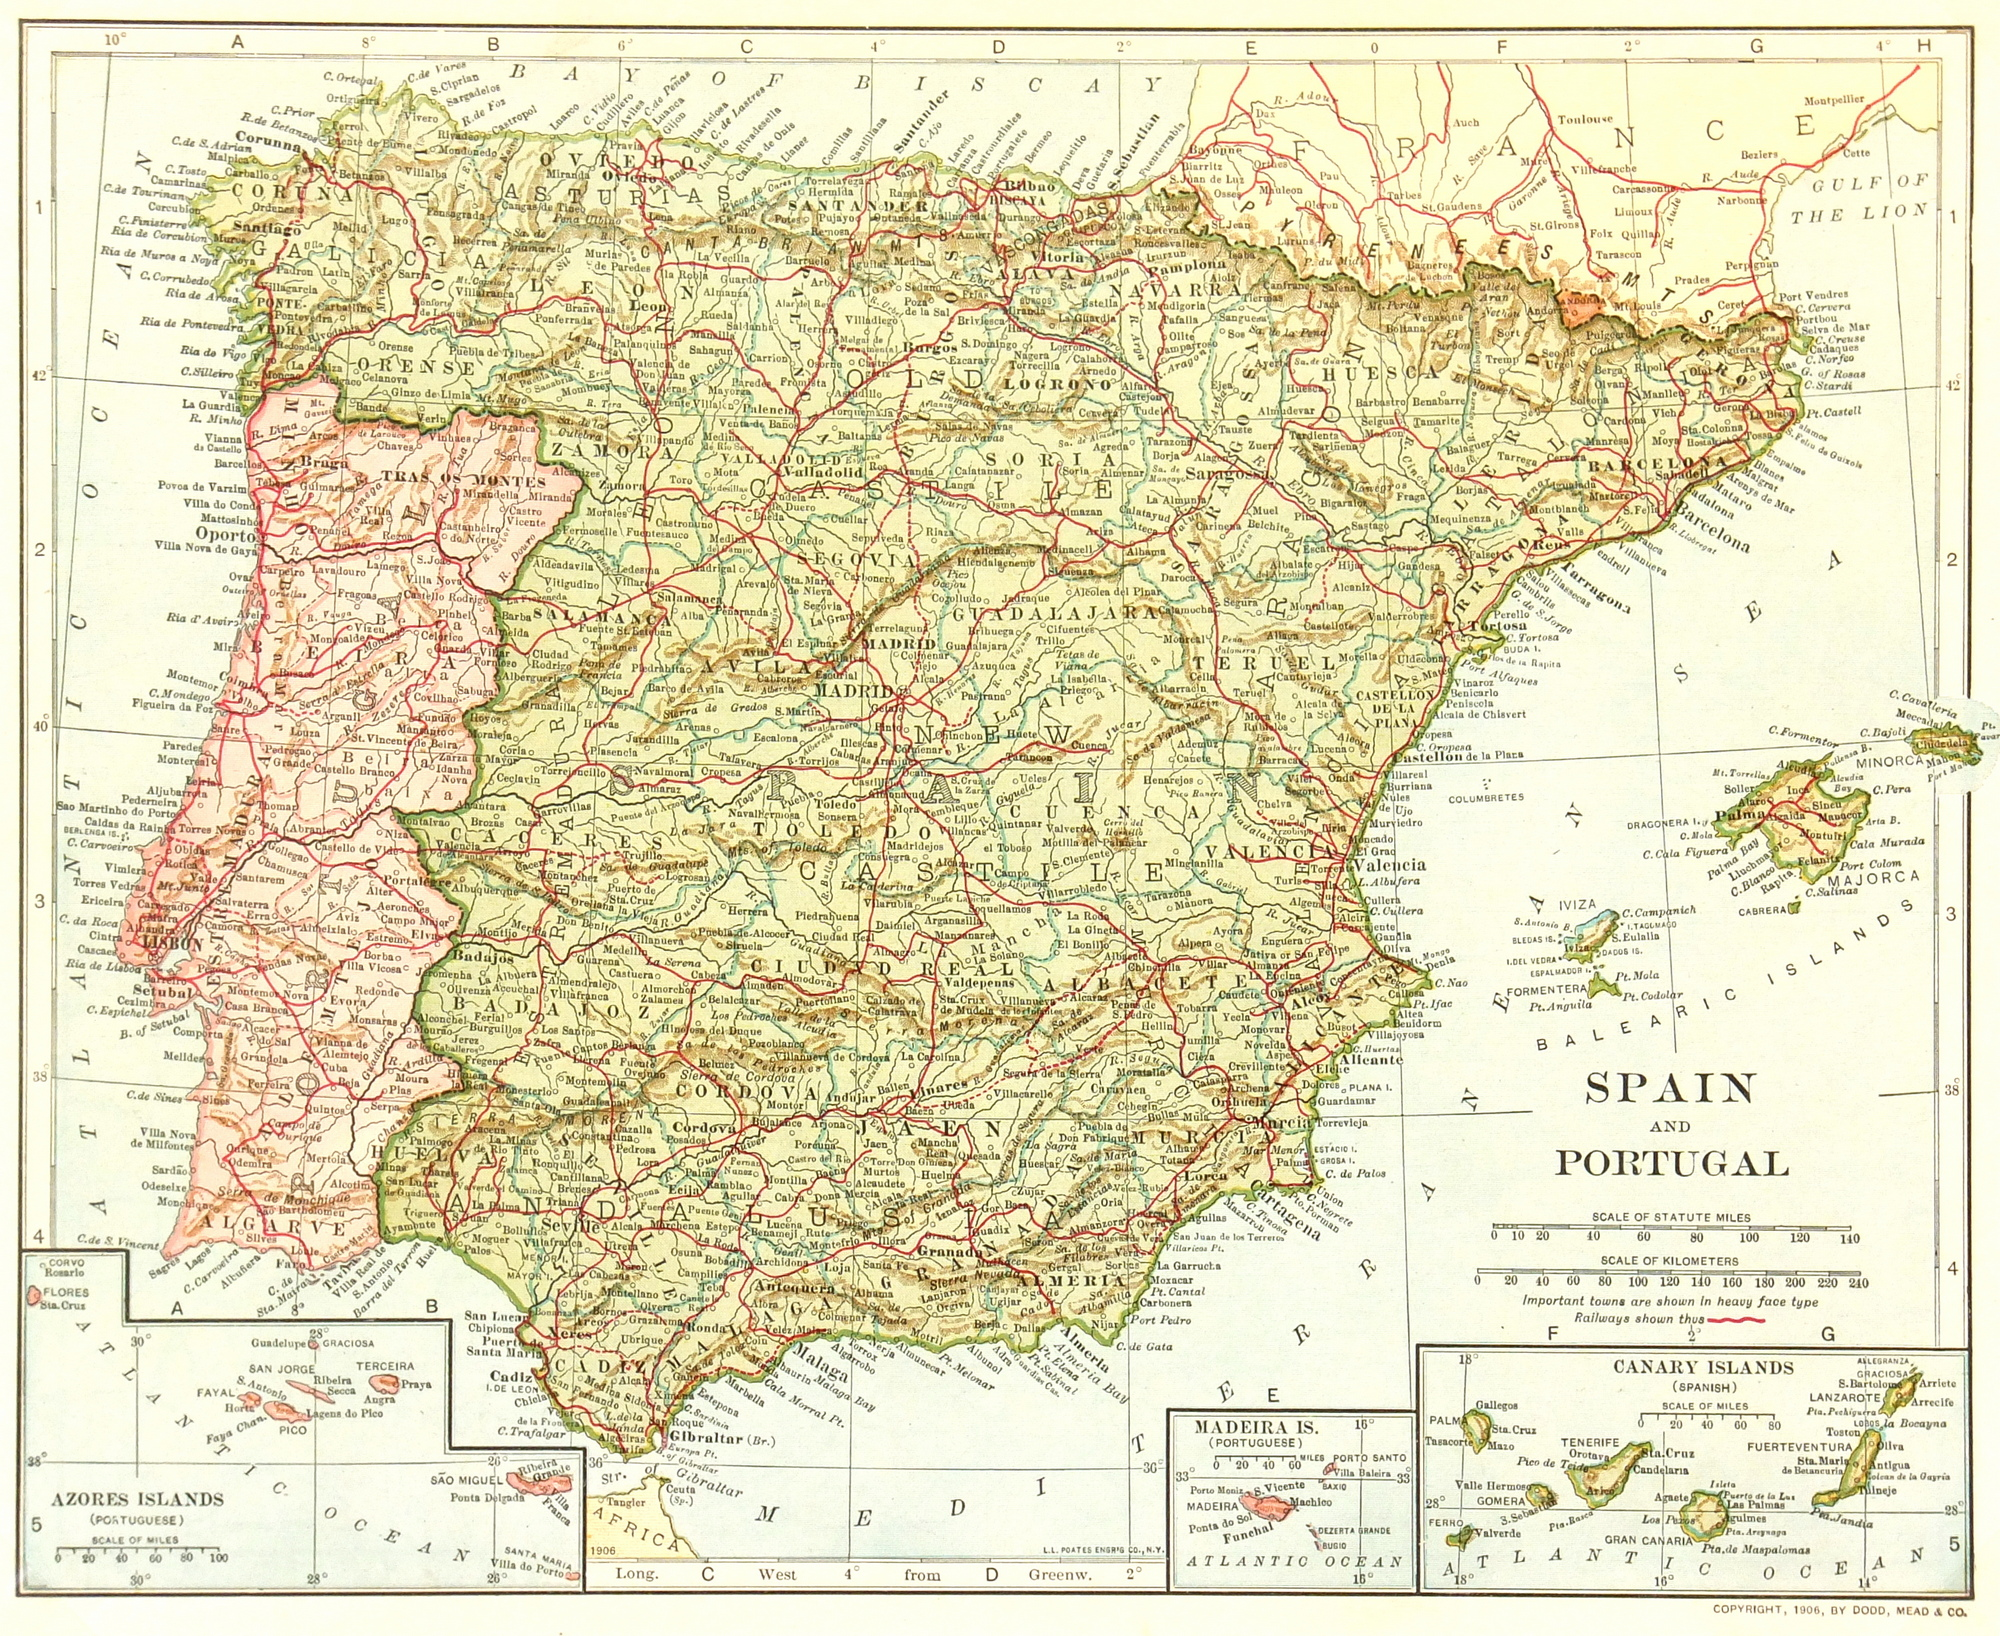 Spain & Portugal Map, 1906-main-7692K